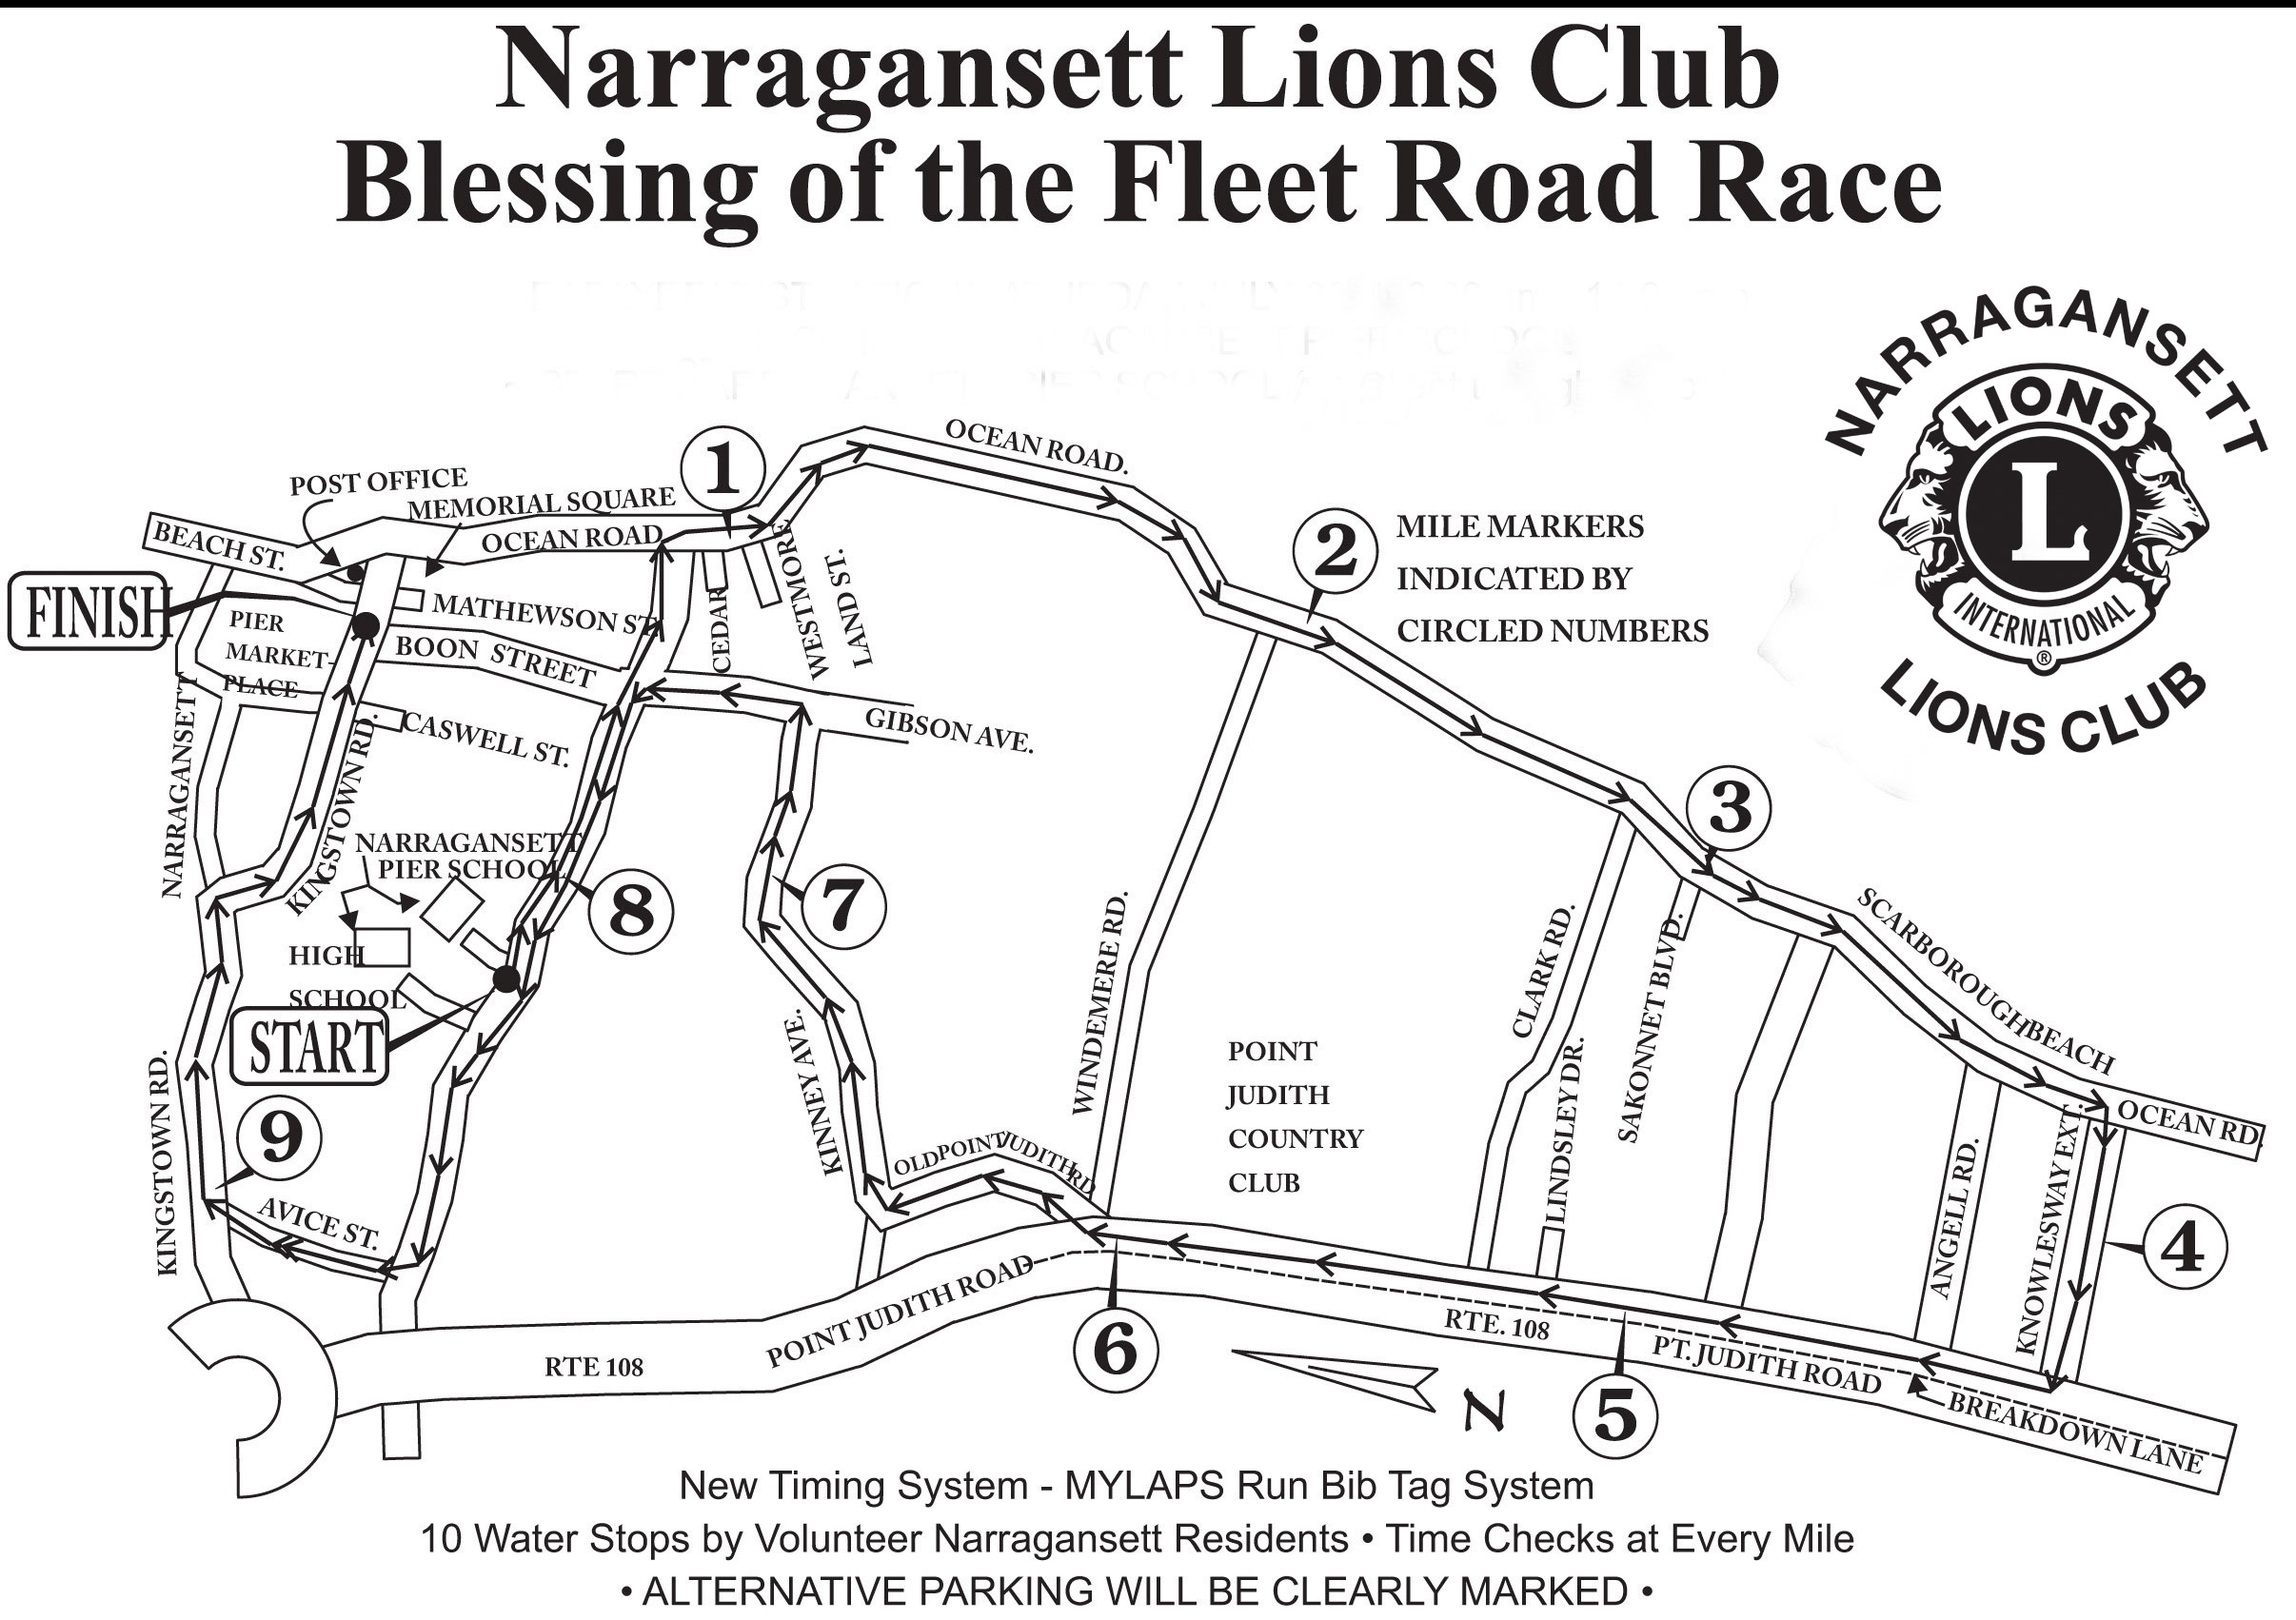 Narragansett Lions Club